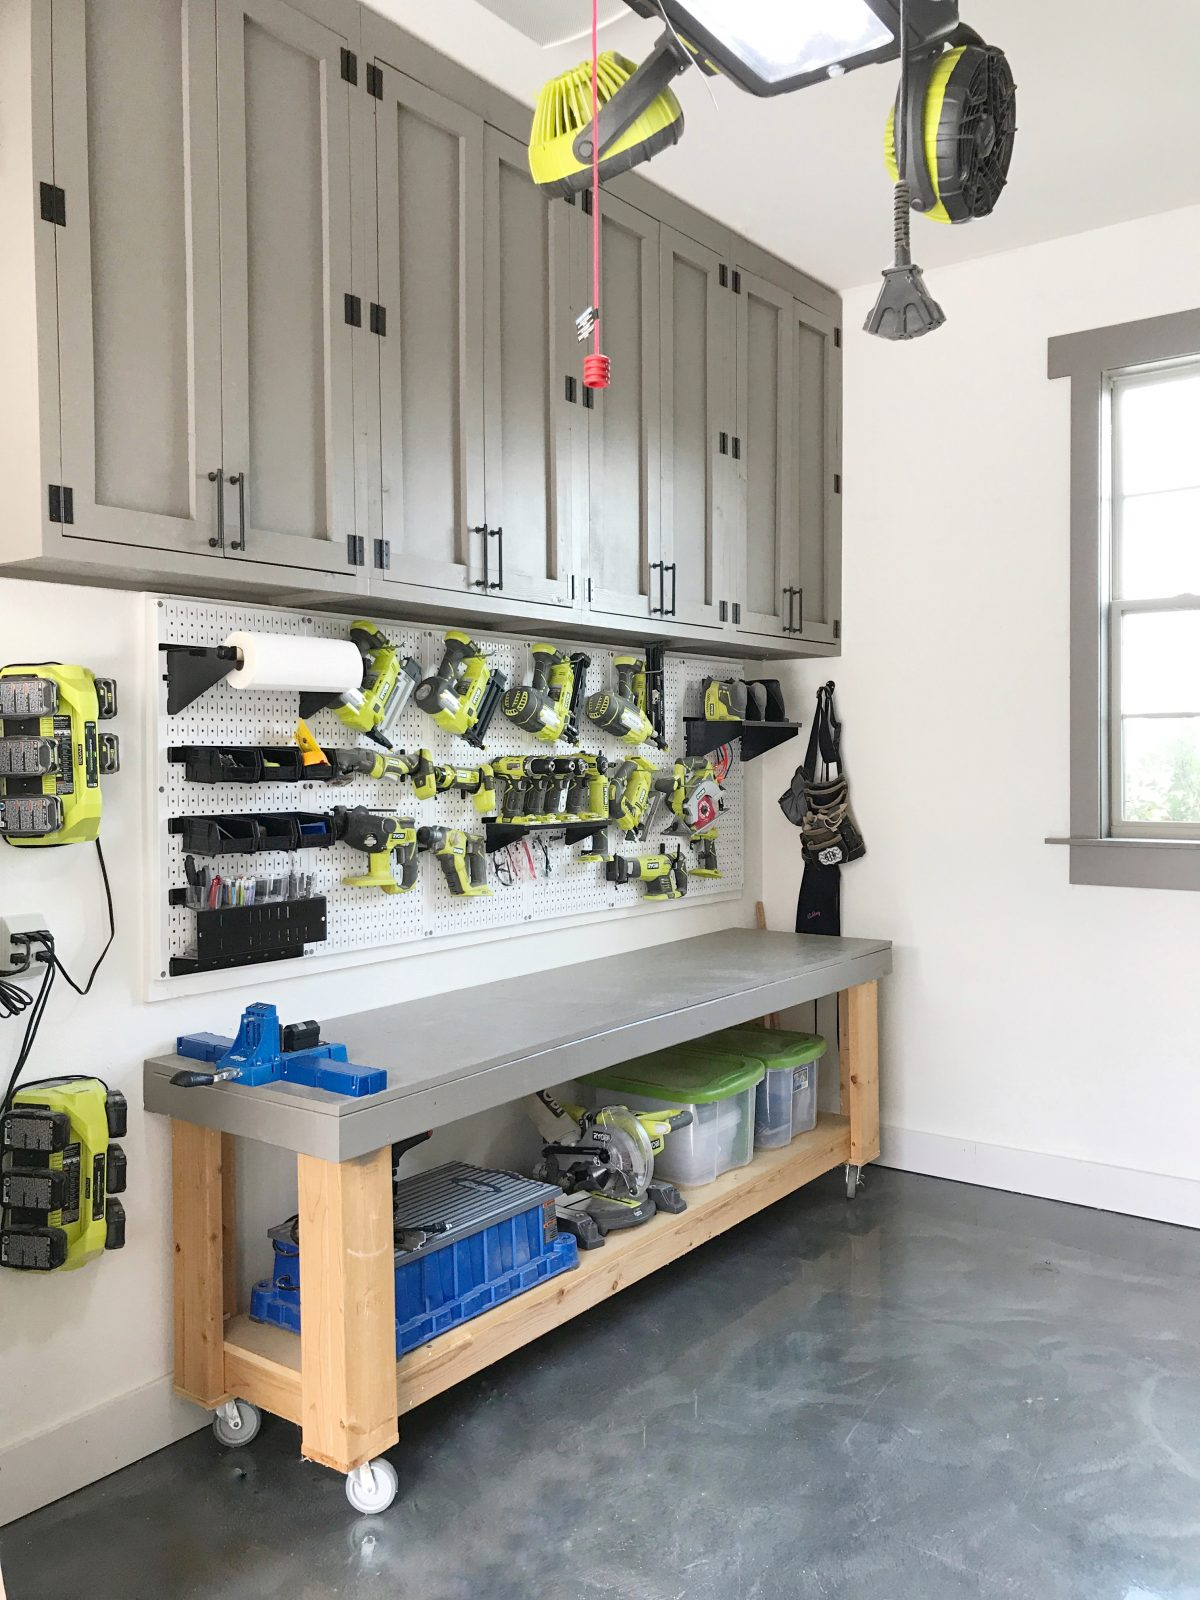 Diy Cabinets For A Garage Workshop Or Craft Room Shanty 2 Chic